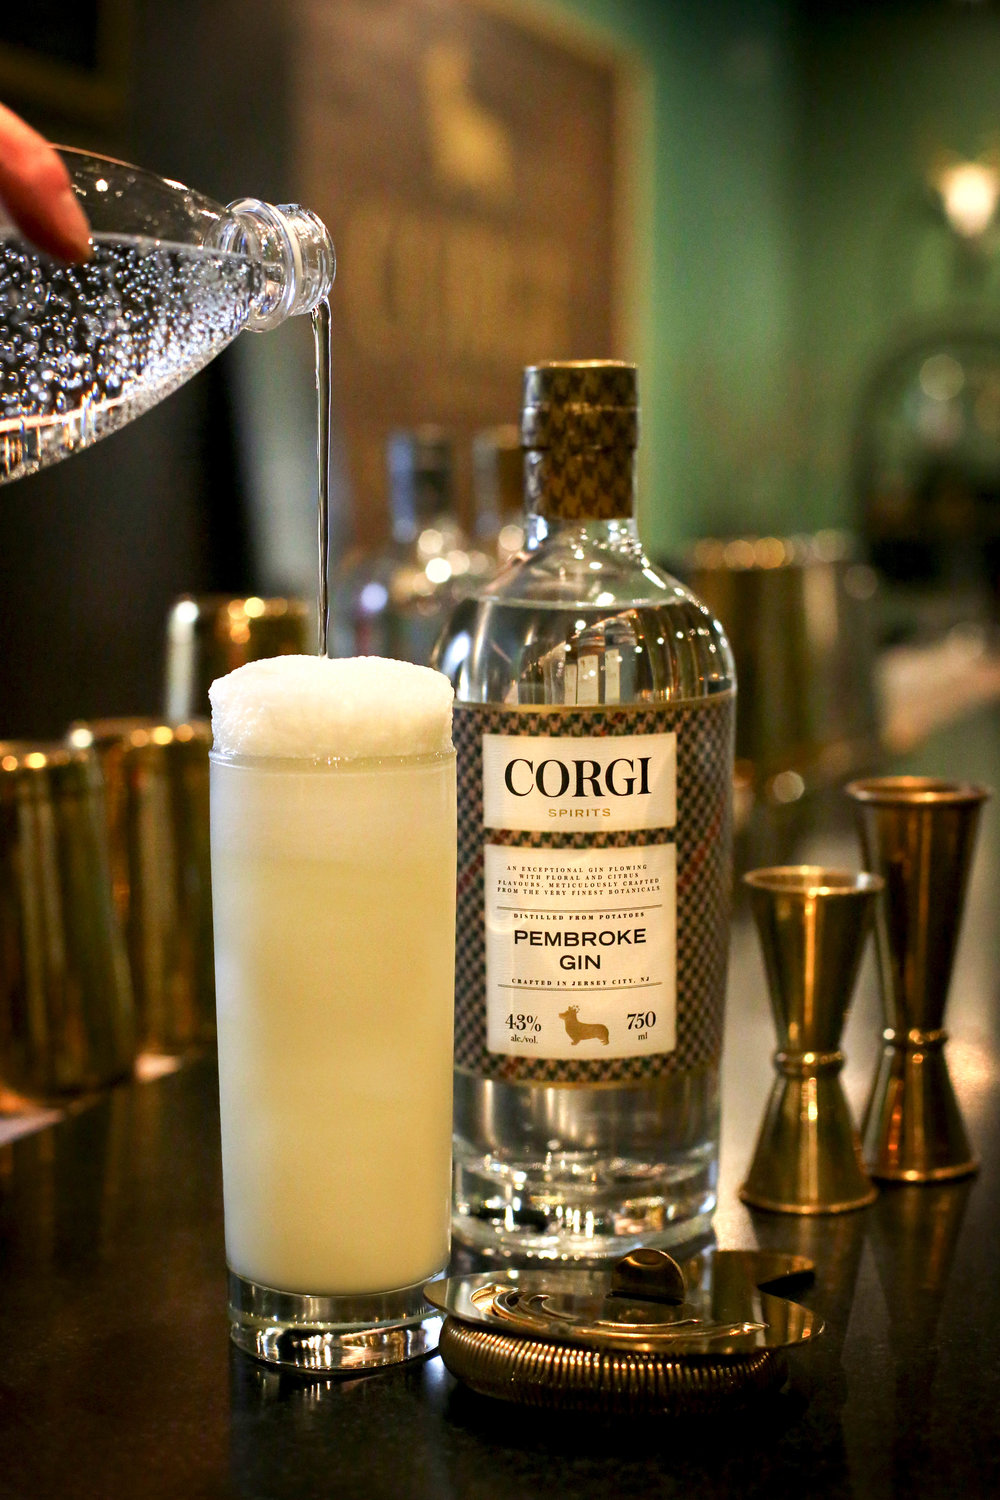 RAMOS GIN FIZZ   2 oz Corgi Spirits Pembroke  1 dash orange blossom water  0.5 oz 1/2 & 1/2  0.5 oz lemon juice  0.5 oz lime juice  0.5 oz simple syrup  1 egg white  1oz seltzer water    In a shaker combine all ingredients excluding the seltzer. Vigorously dry shake (no ice) for 30 seconds. Add ice and vigorously shake for 30 more seconds. Strain cocktail into glass and slowly pour the seltzer water into the mixing glass to release the remaining froth. Gently ease the seltzer water/froth mixture onto the top of the drink and serve.